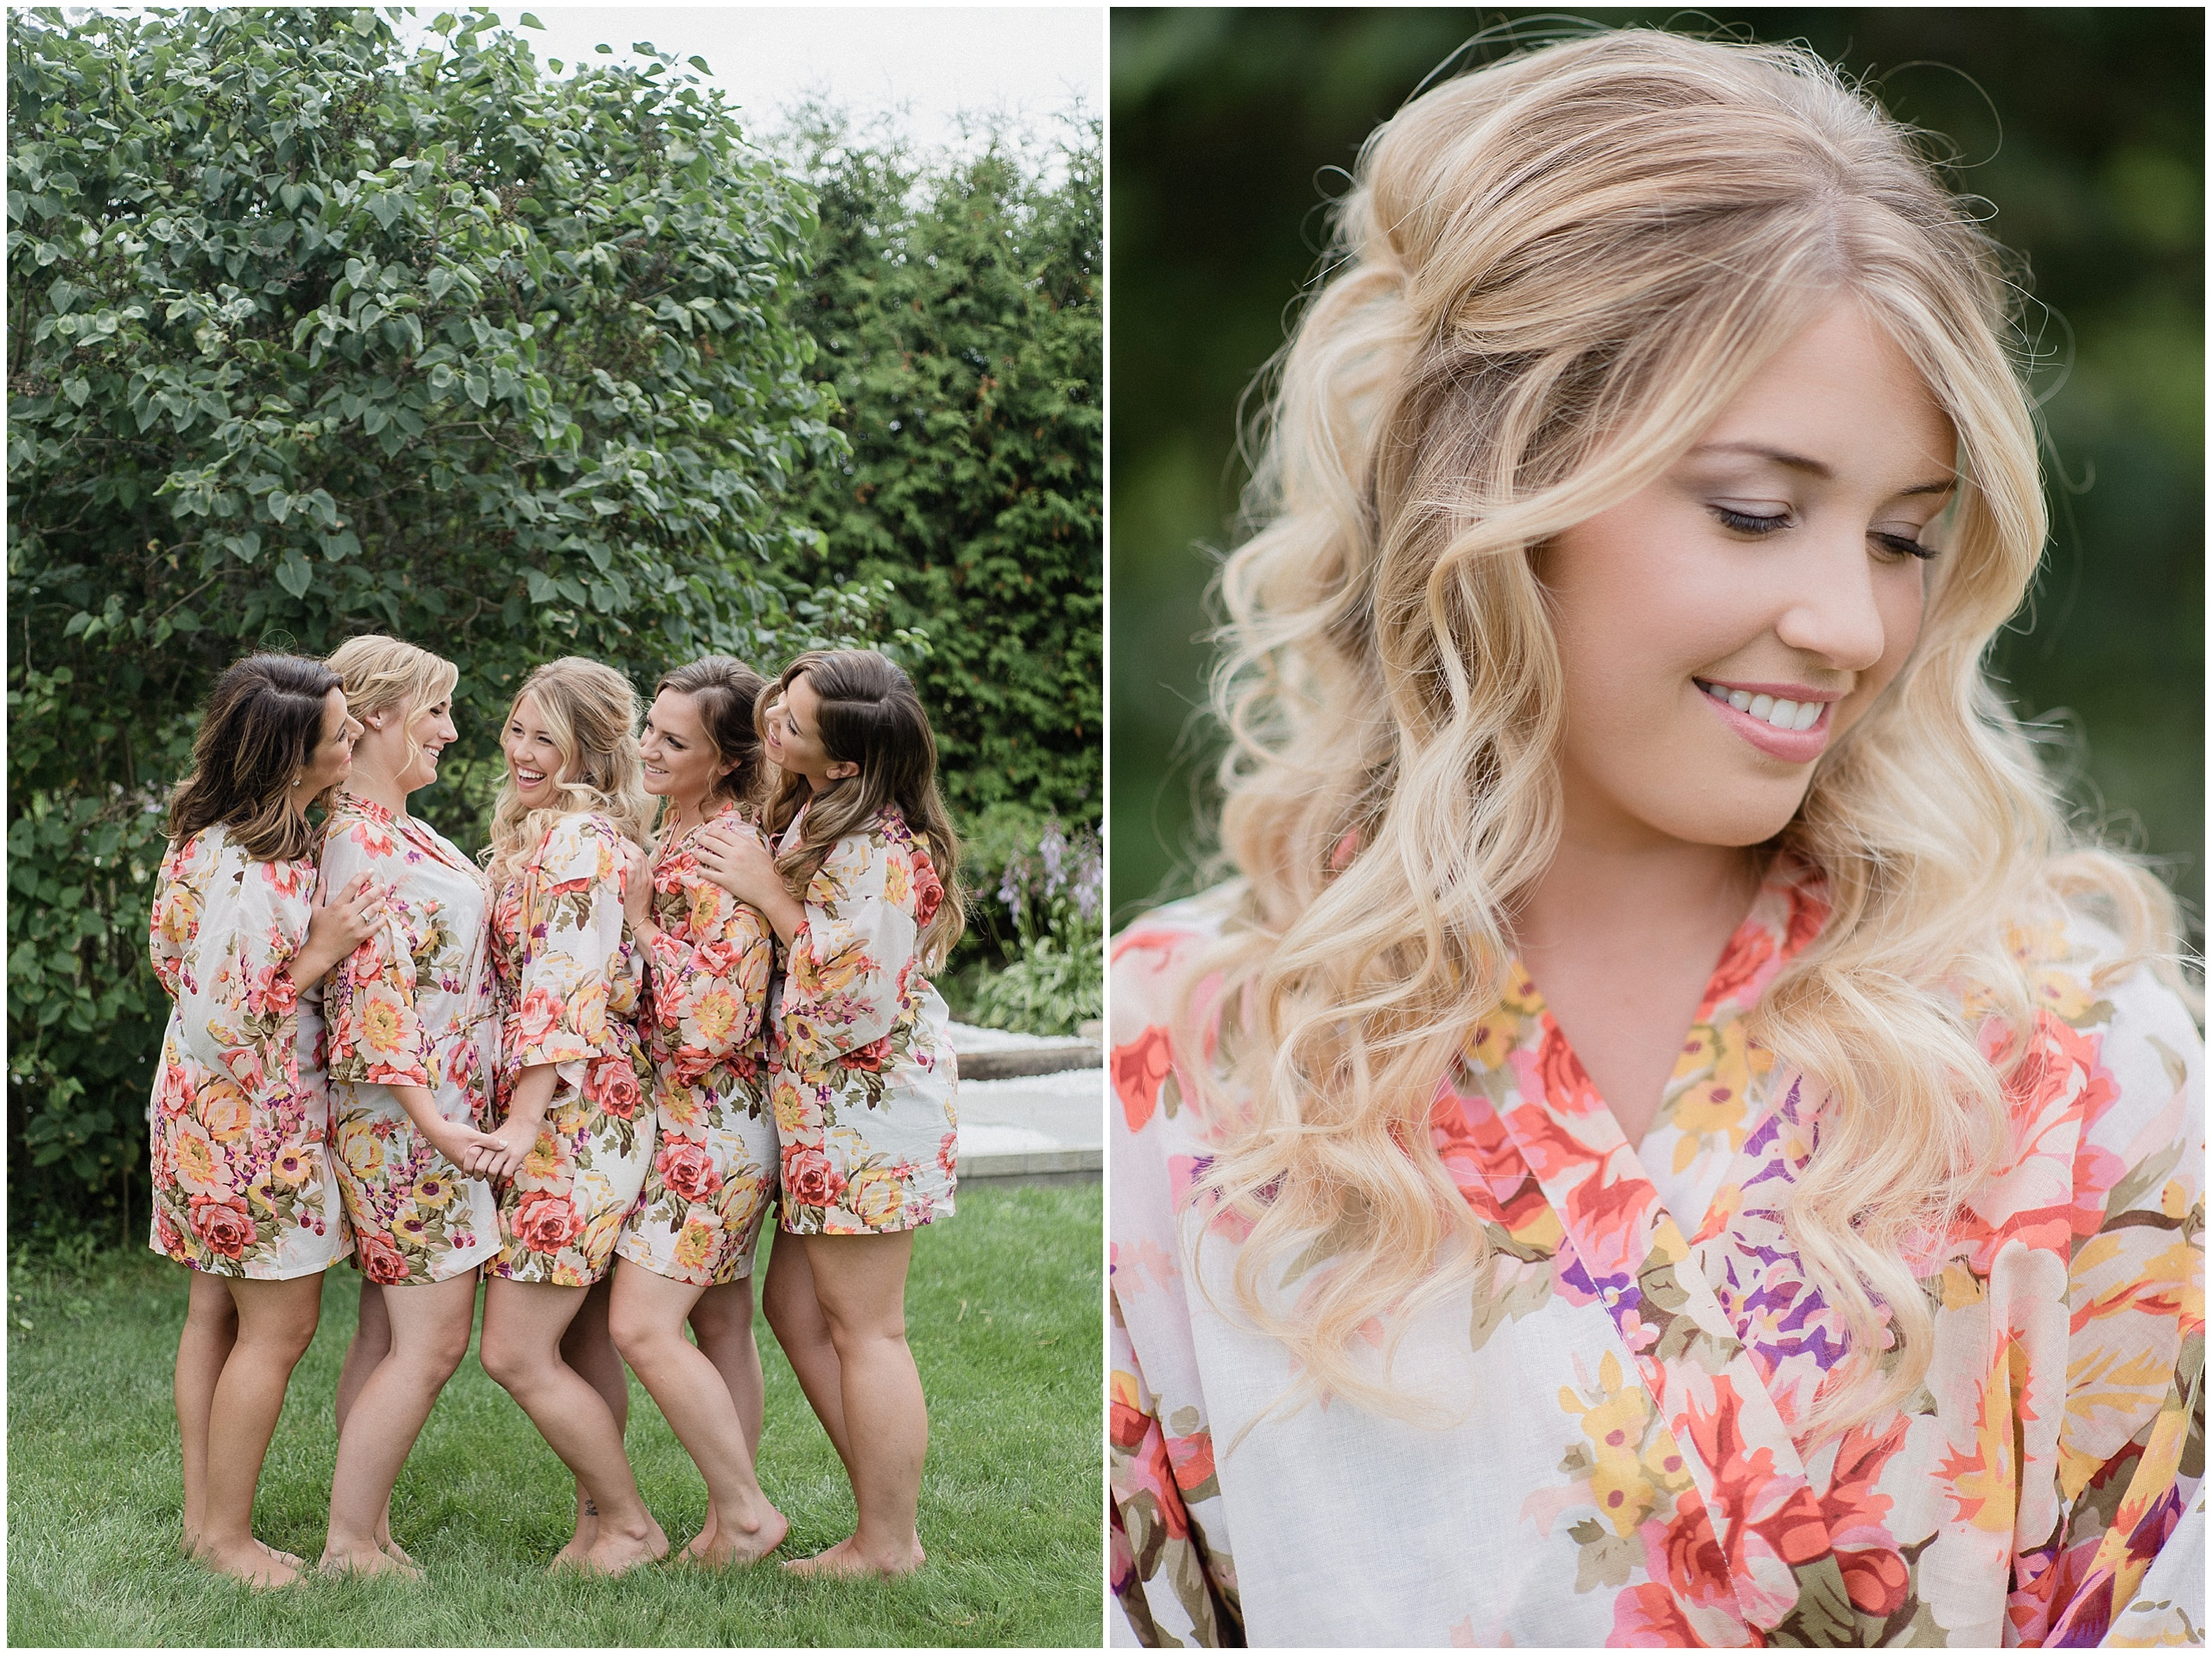 Bride and bridesmaids in floral robes, photographed by Jenn Kavanagh Photography